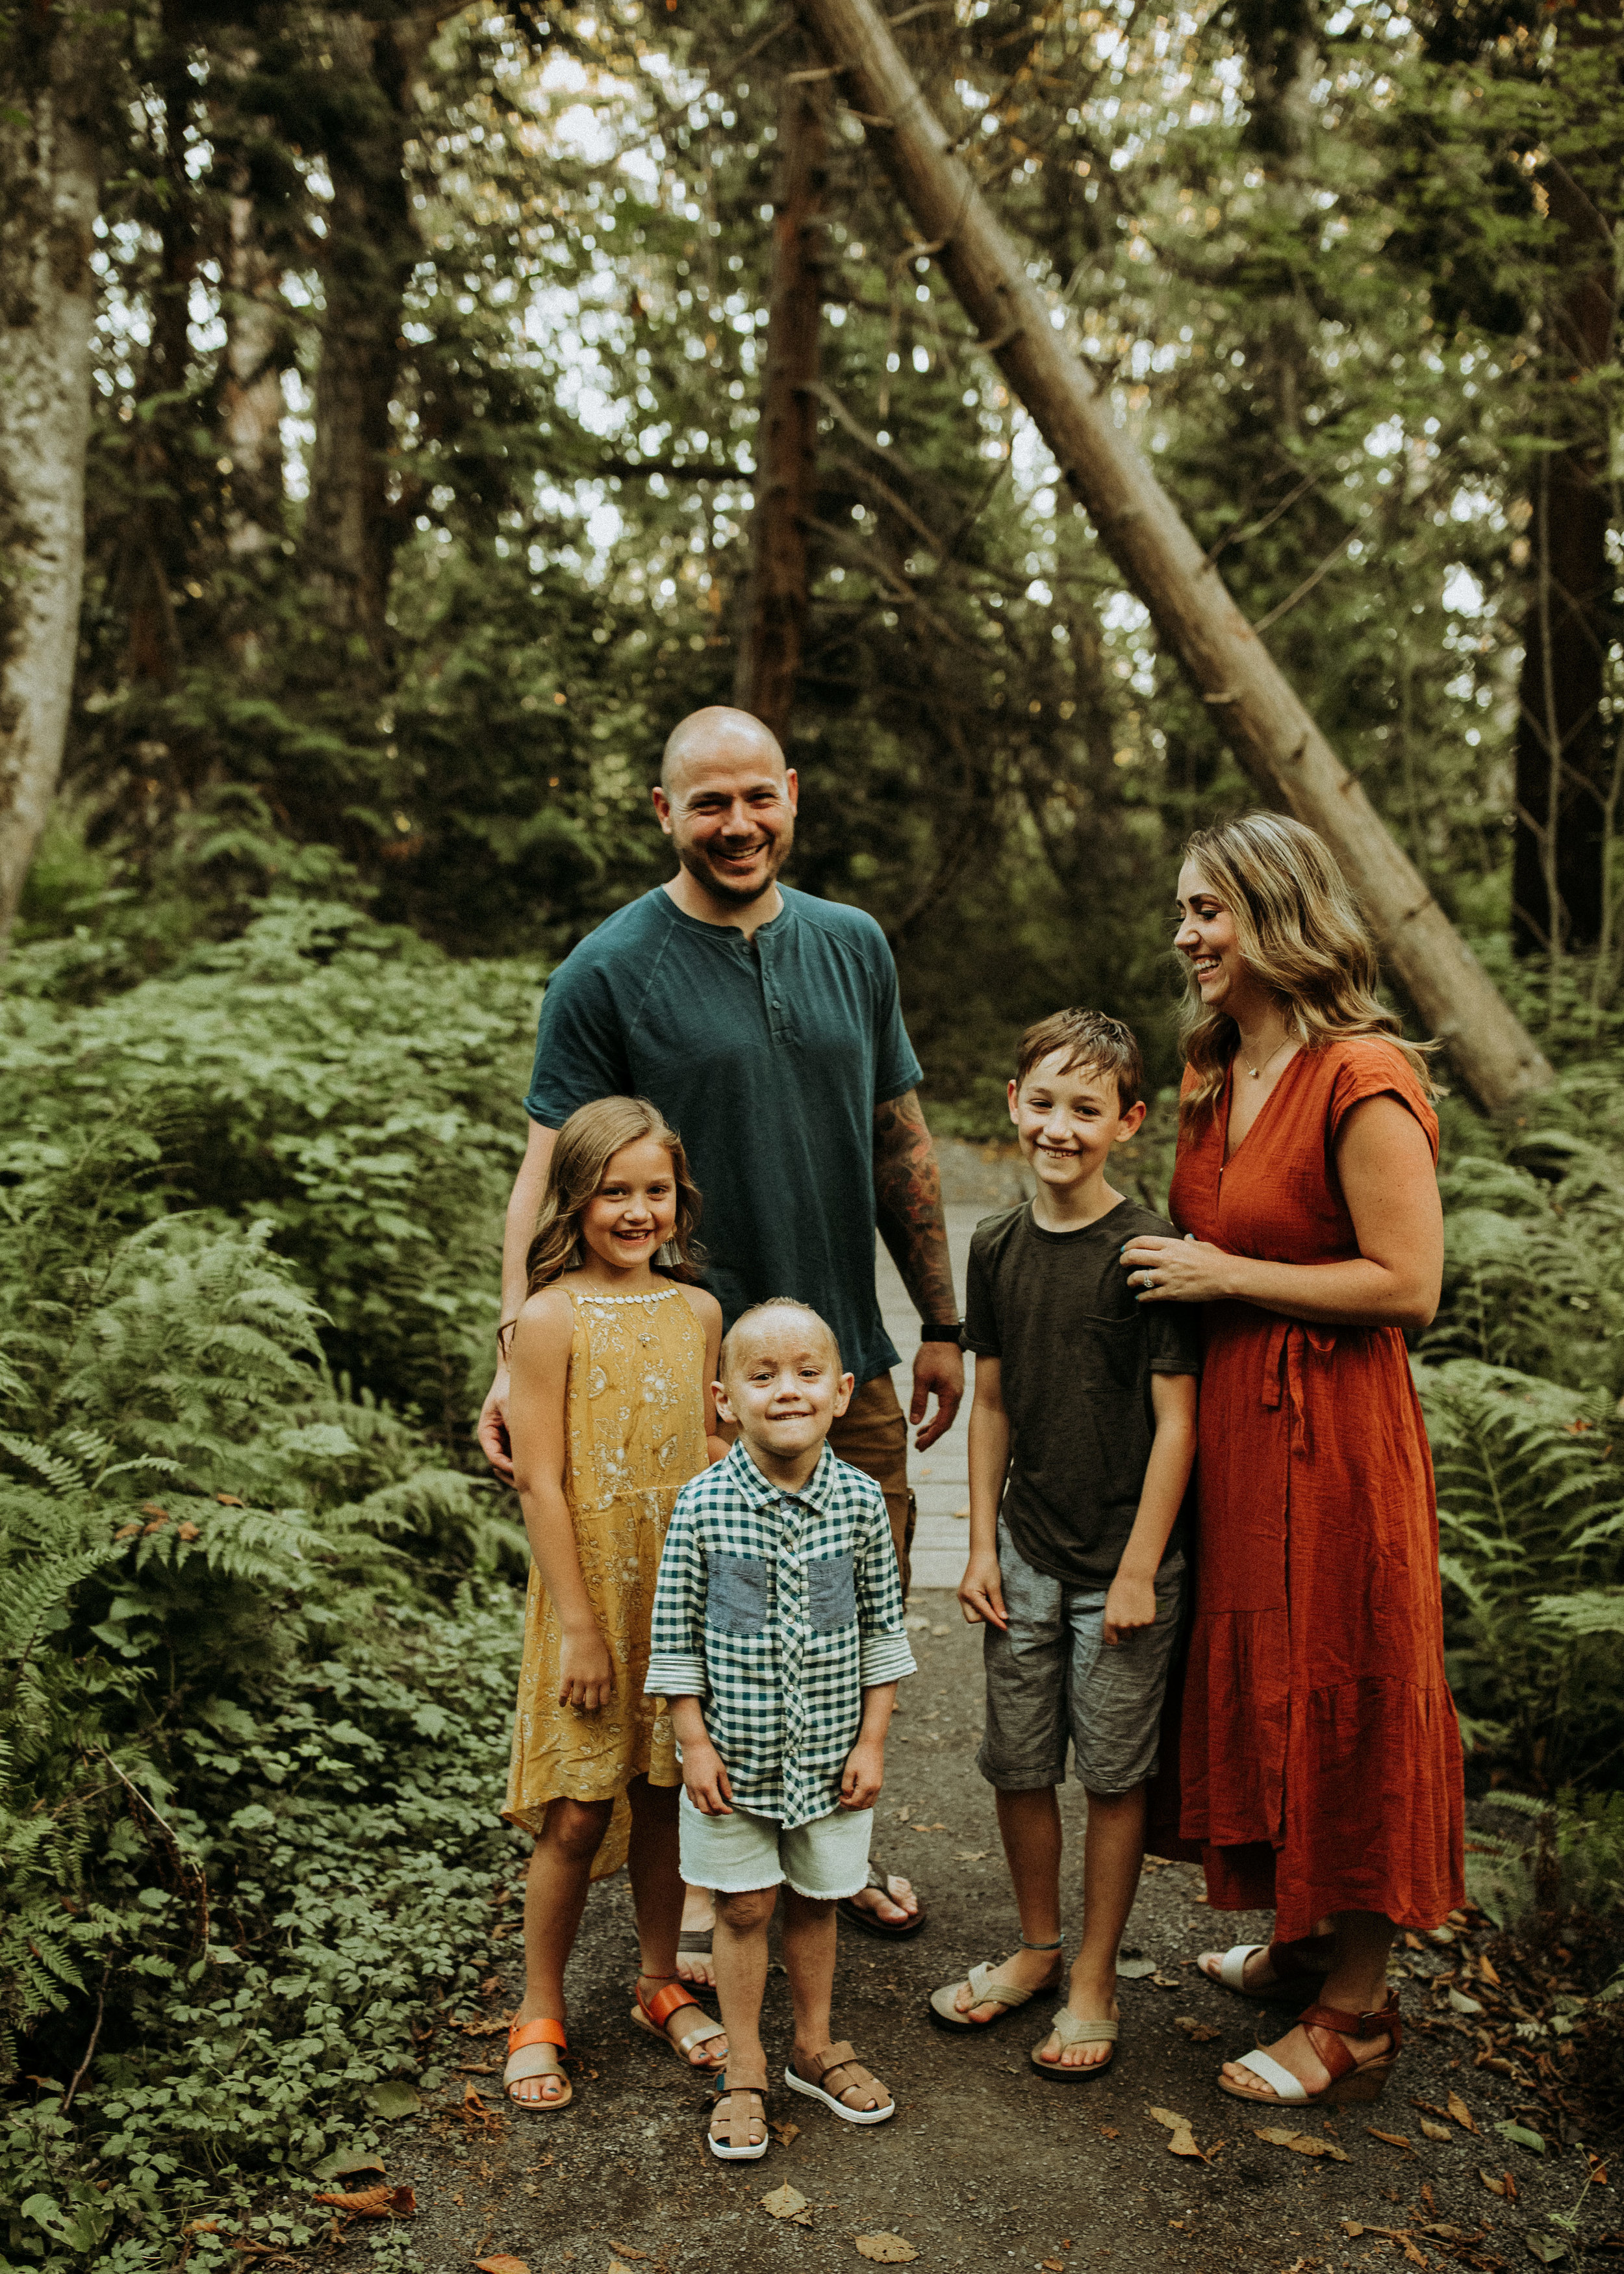 Family-Photographer-Bellingham-WA-Brianne-Bell-Photograpy-(Berry)-8.jpg